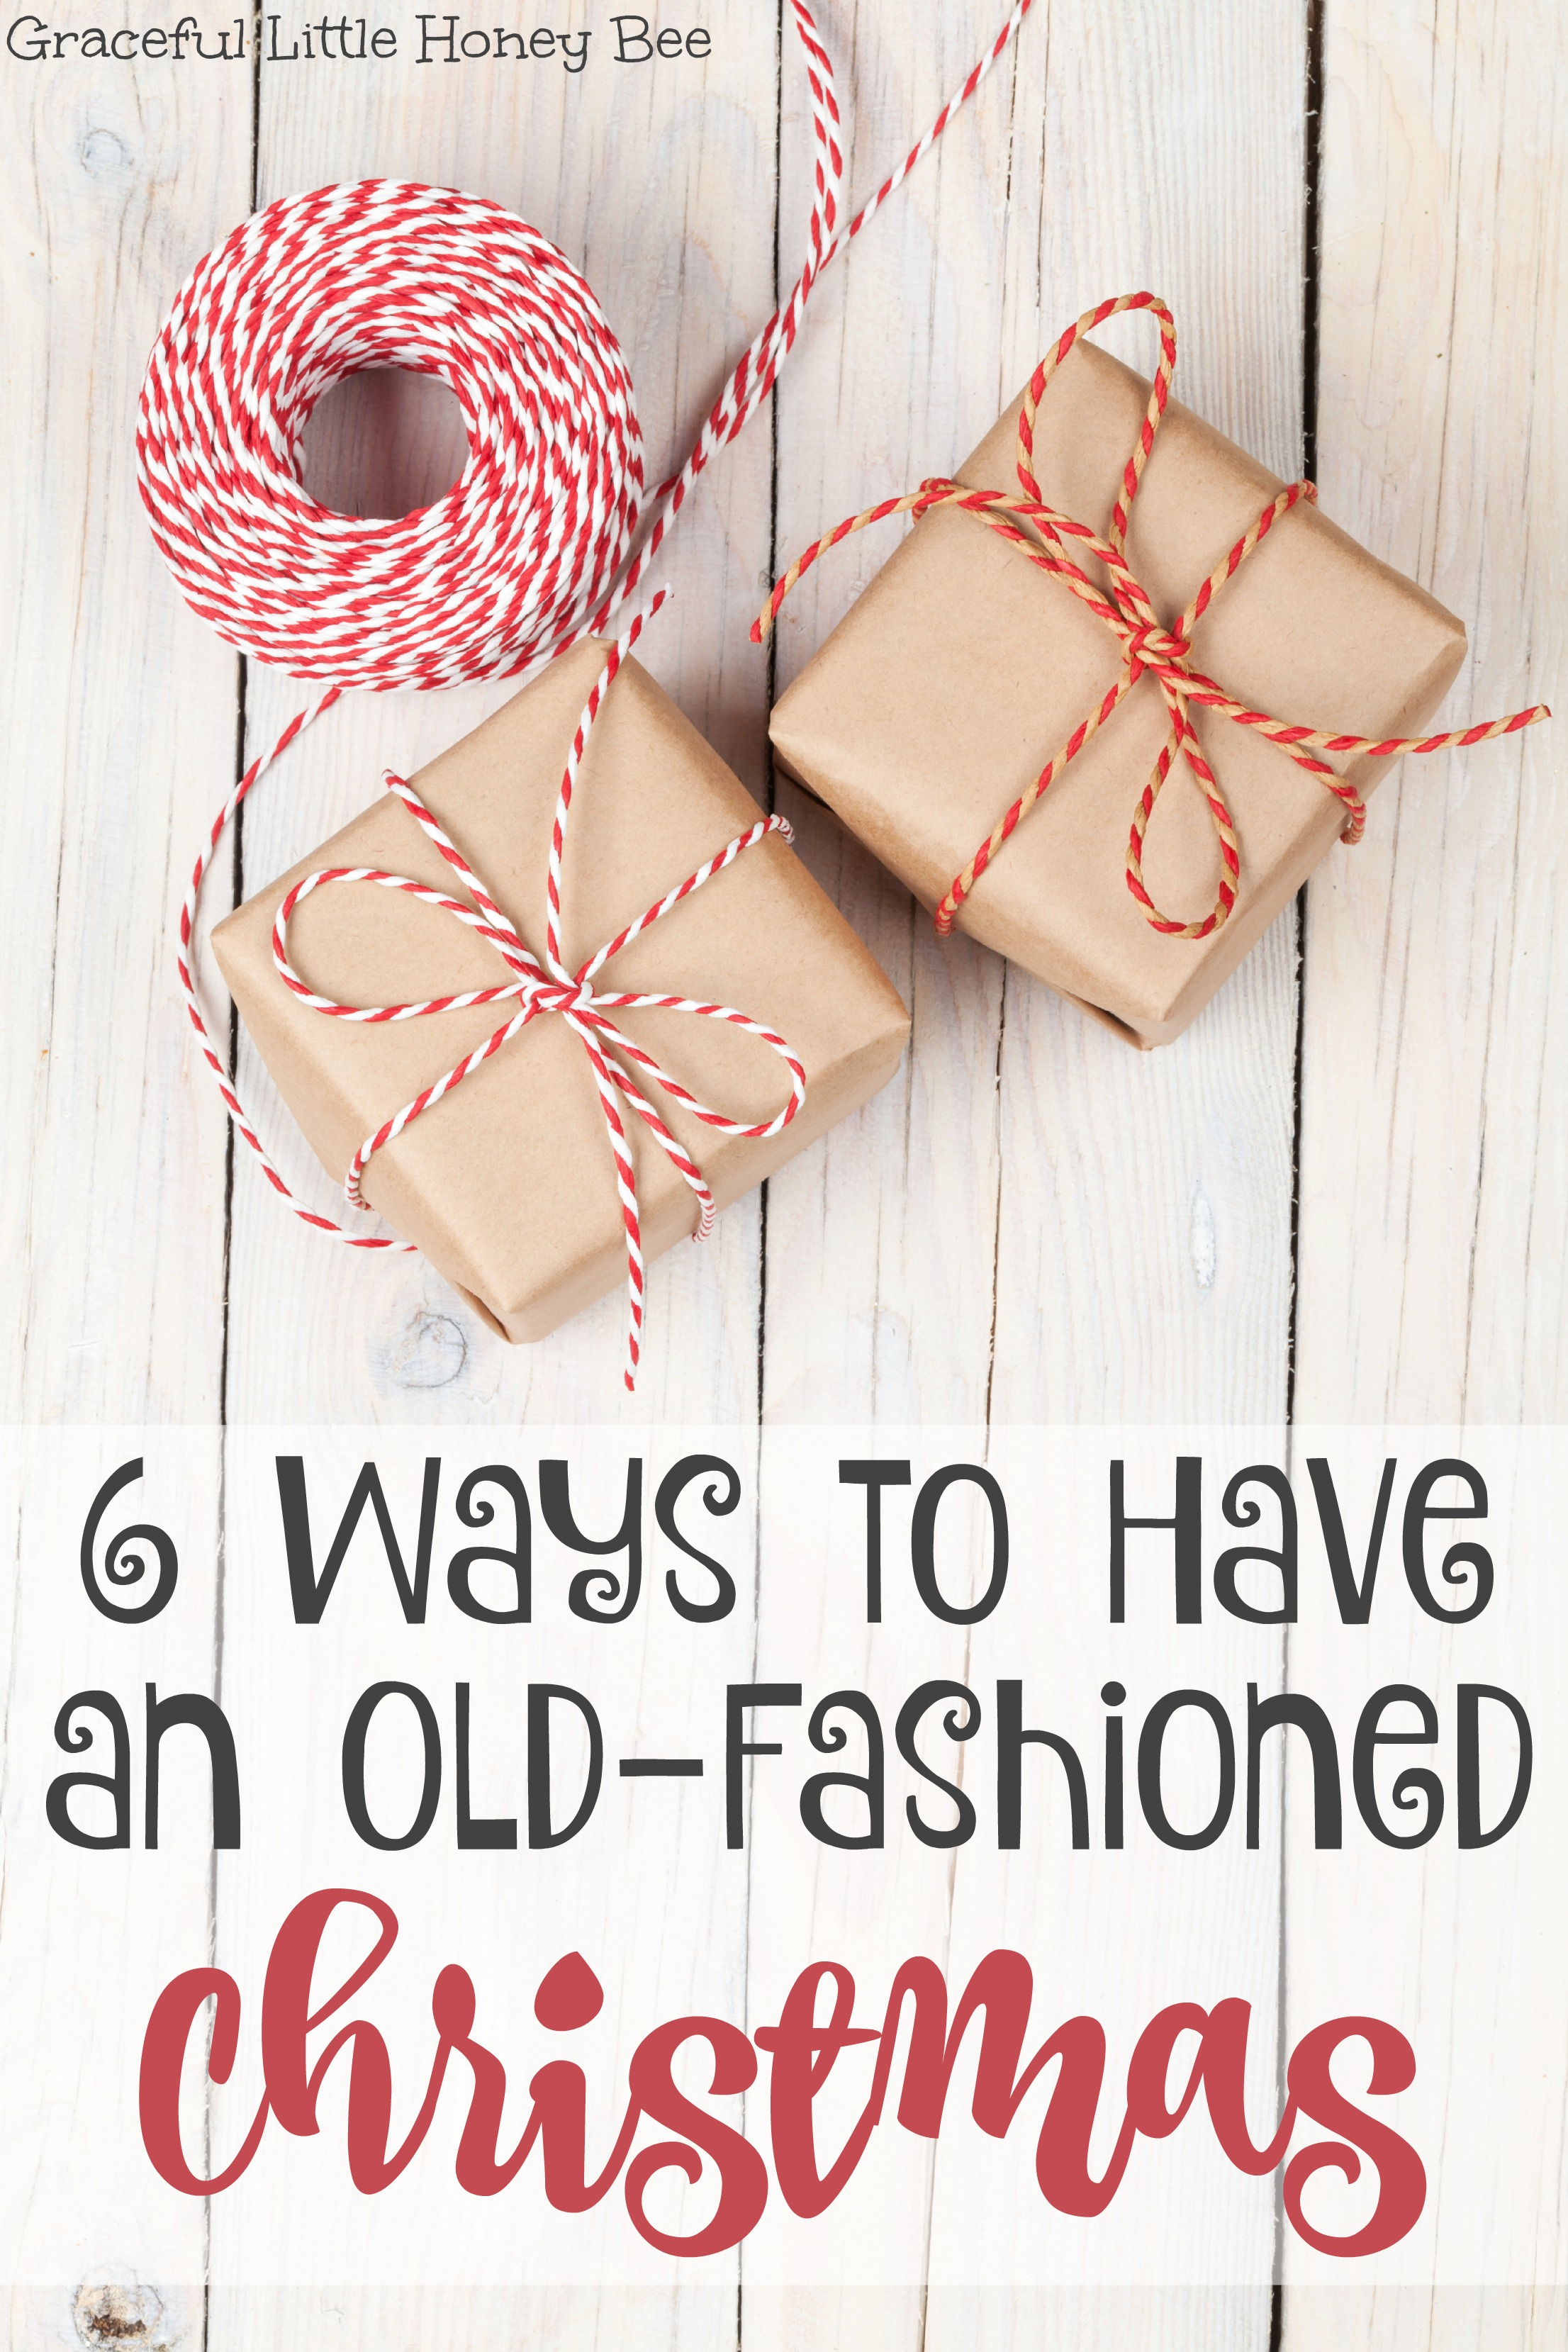 6 Ways to Have an Old-Fashioned Christmas - Graceful Little Honey Bee